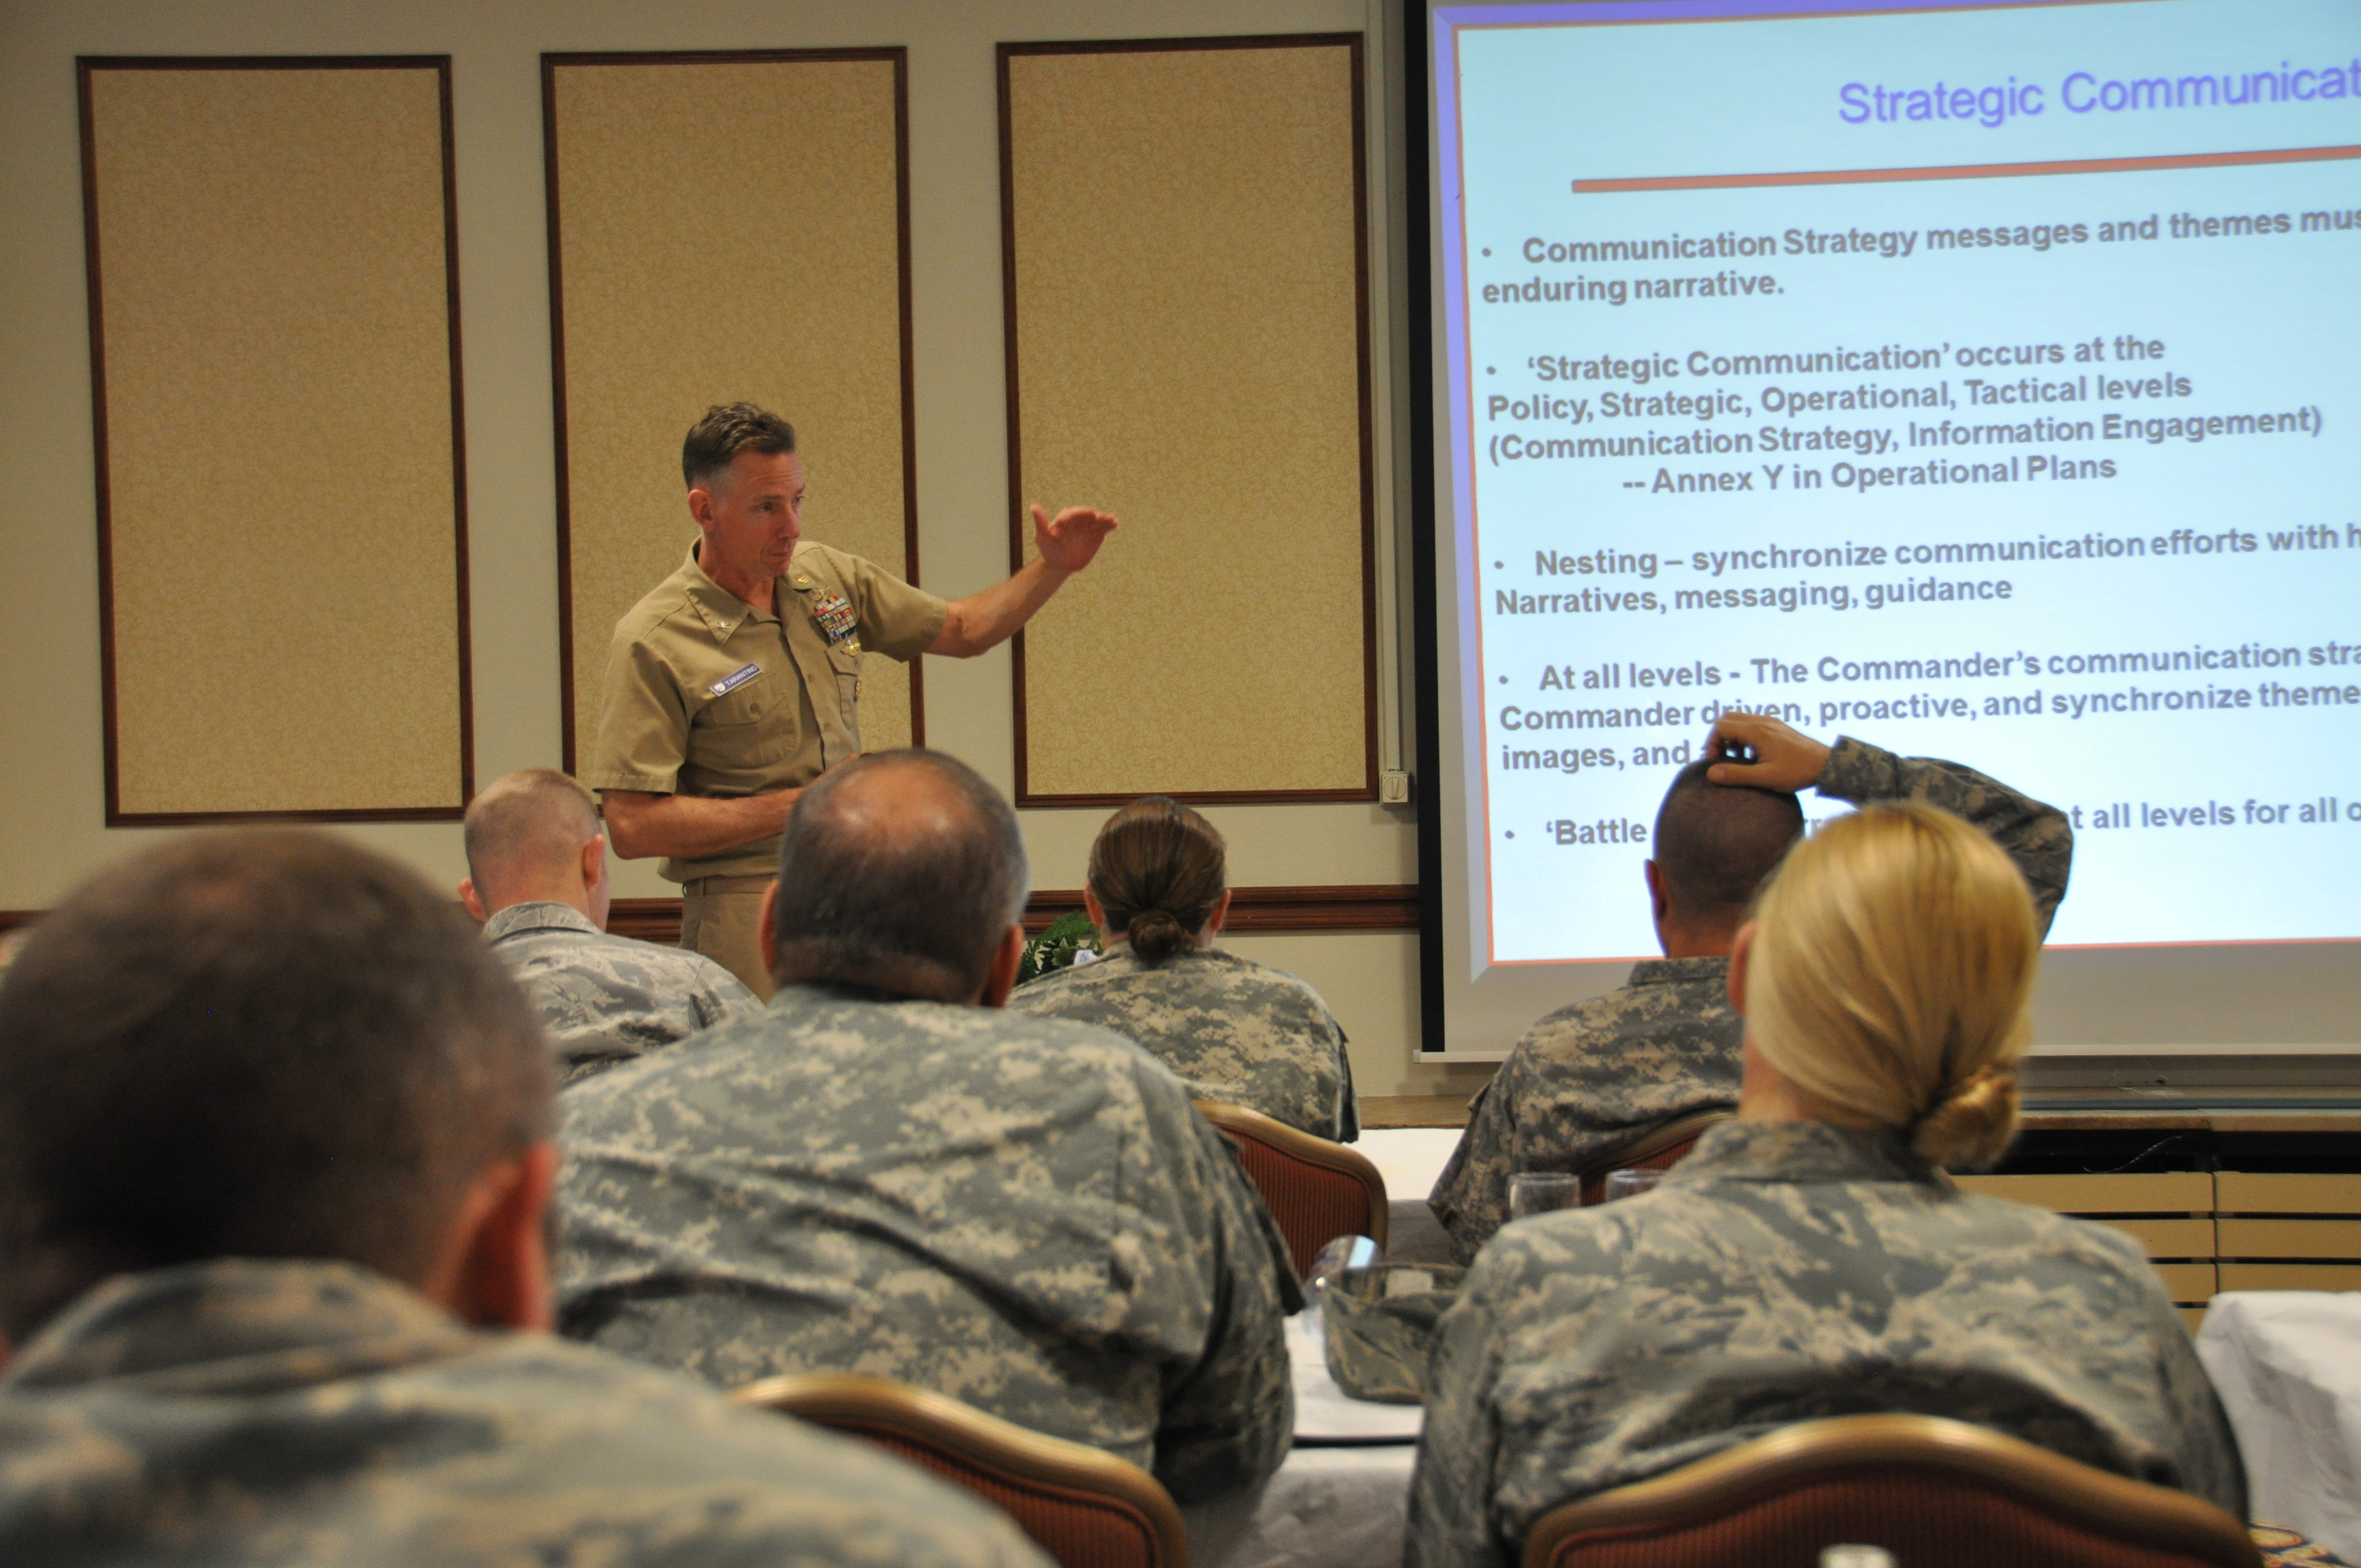 U.S. Navy Capt. (Dr.) David Tarantino, course director, Center for Disaster and Humanitarian Assistance Medicine, briefs on Understanding of the strategic, operational, and civil-military considerations during a three-day Global Health Engagement (GHE) and Medical Stability Operations (MSO) course held in Stuttgart, Germany. April 27-29, 2015.  More than 40 medical experts from U.S. Africa Command, its subordinate commands and the United States attended the course held in Stuttgart, Germany, to build an awareness of the complex set of variables that shape the development of Department of Defense Global Health Engagement (GHE) and Medical Stability Operations (MSO).  and to also help medical practitioners here gain an understanding of the key principles to plan and conduct a GHE/MSO activity. The course was hosted by the AFRICOM command surgeon's office.  (AFRICOM photo by Tech. Sgt. Olufemi A. Owolabi)